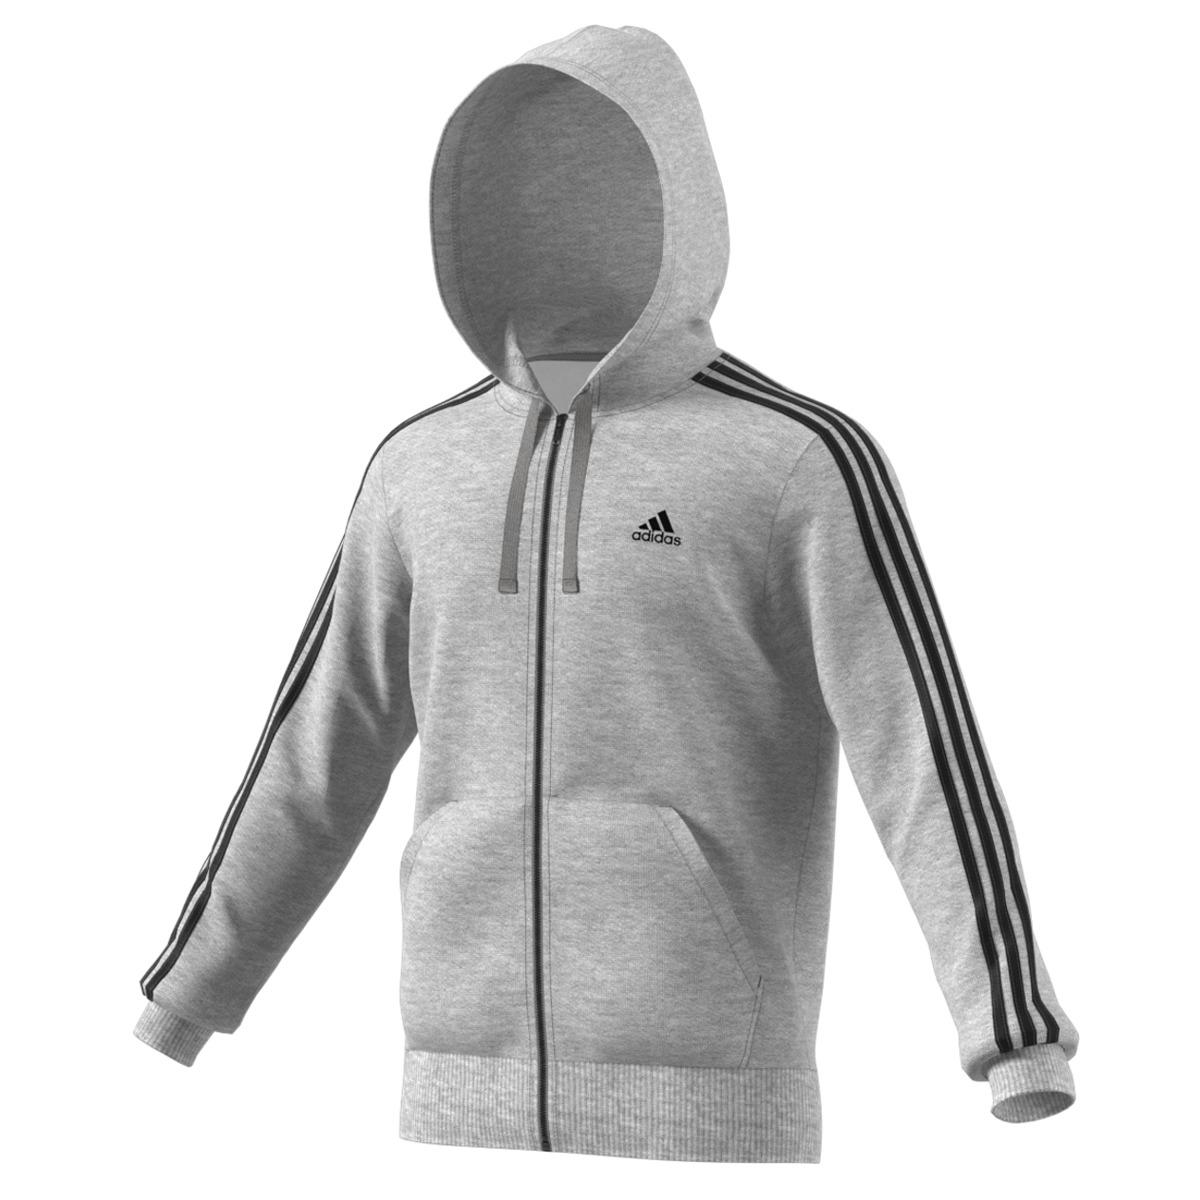 18a50eed03c0 adidas Classics 3s Fz Brushed Sweatshirt in Gray for Men - Lyst